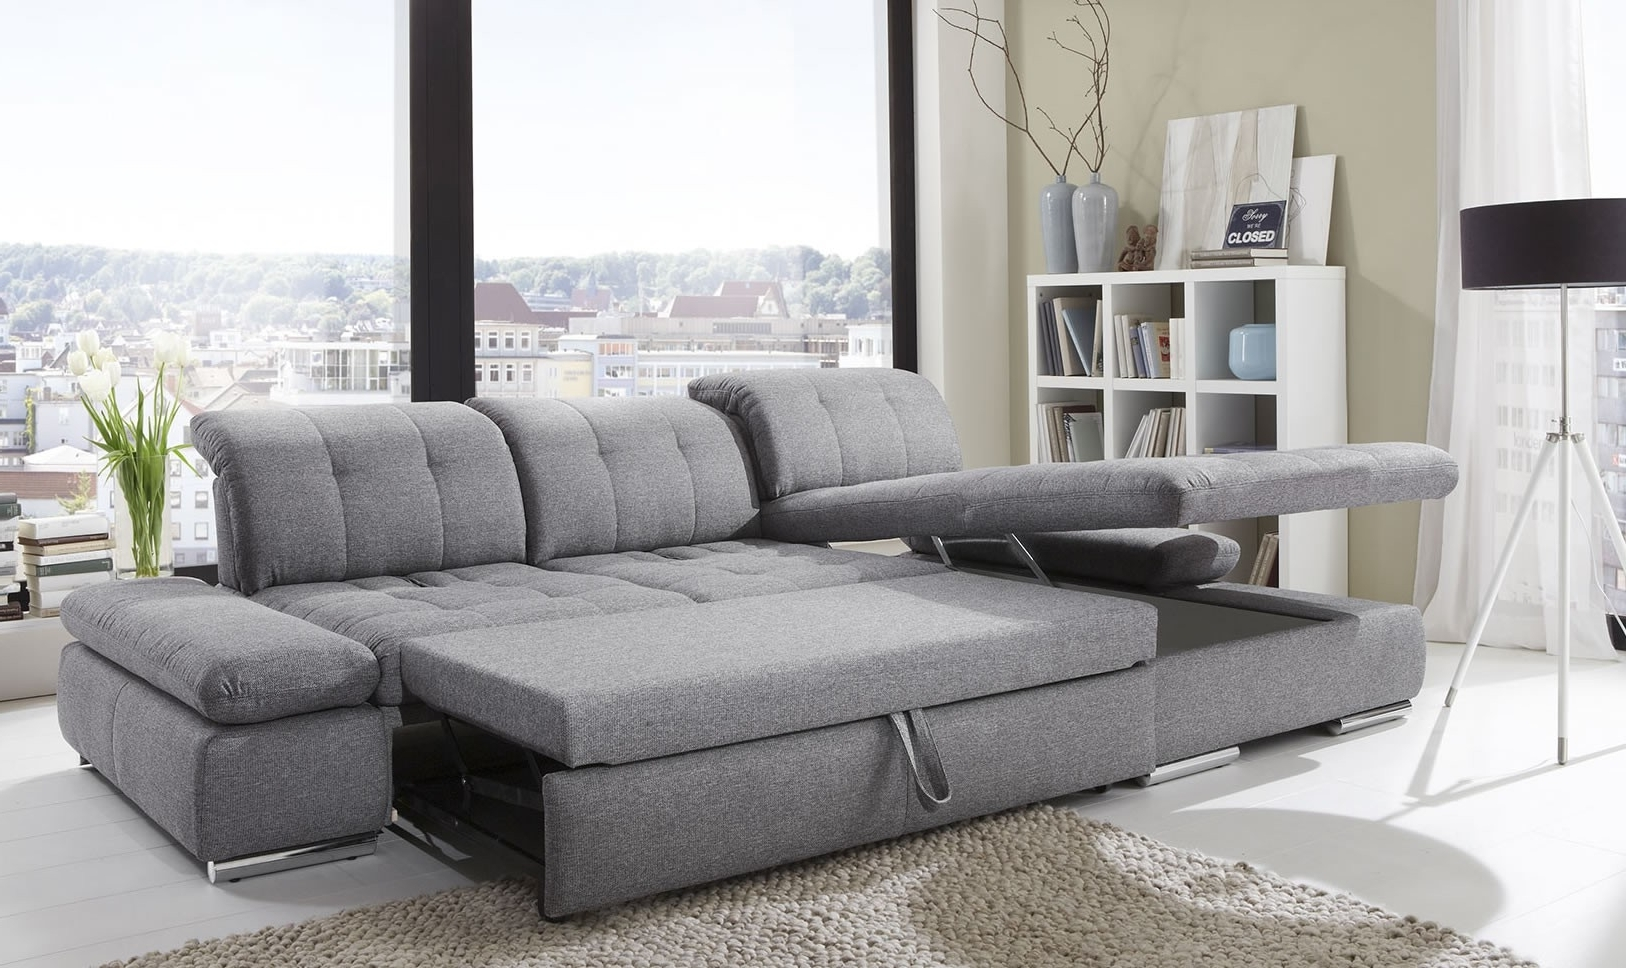 Most Popular Alpine Sectional Sleeper Sofa, Left Arm Chaise Facing, Black Regarding Sectional Sleeper Sofas With Chaise (View 2 of 15)